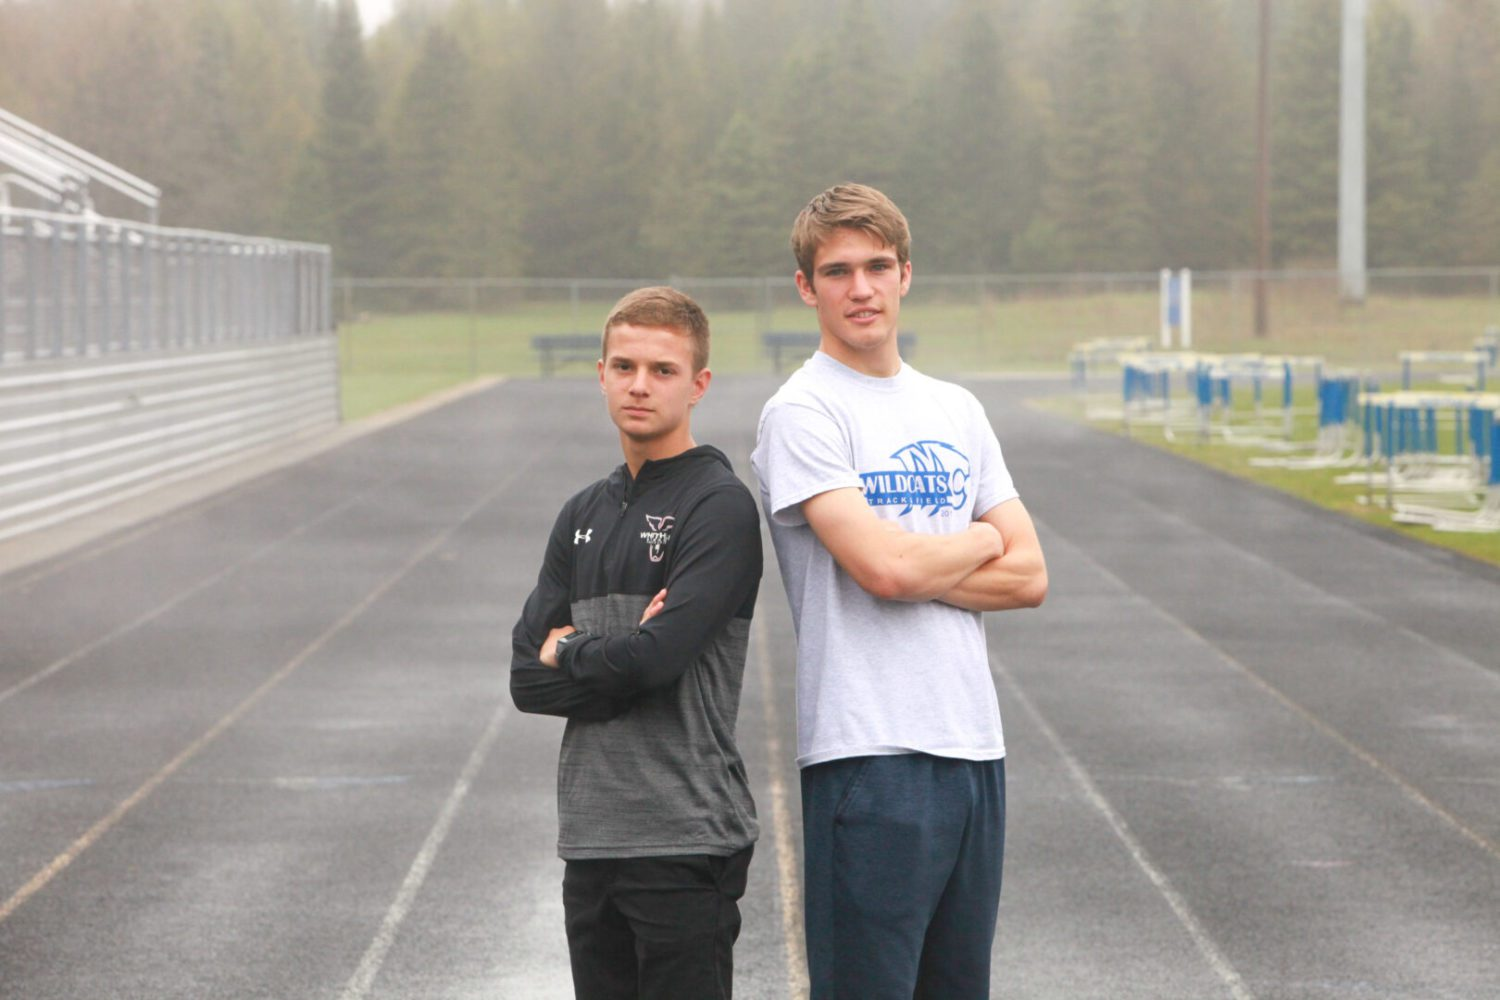 Montague's Jensen, Whitehall's Baustert constantly push each other in distance events